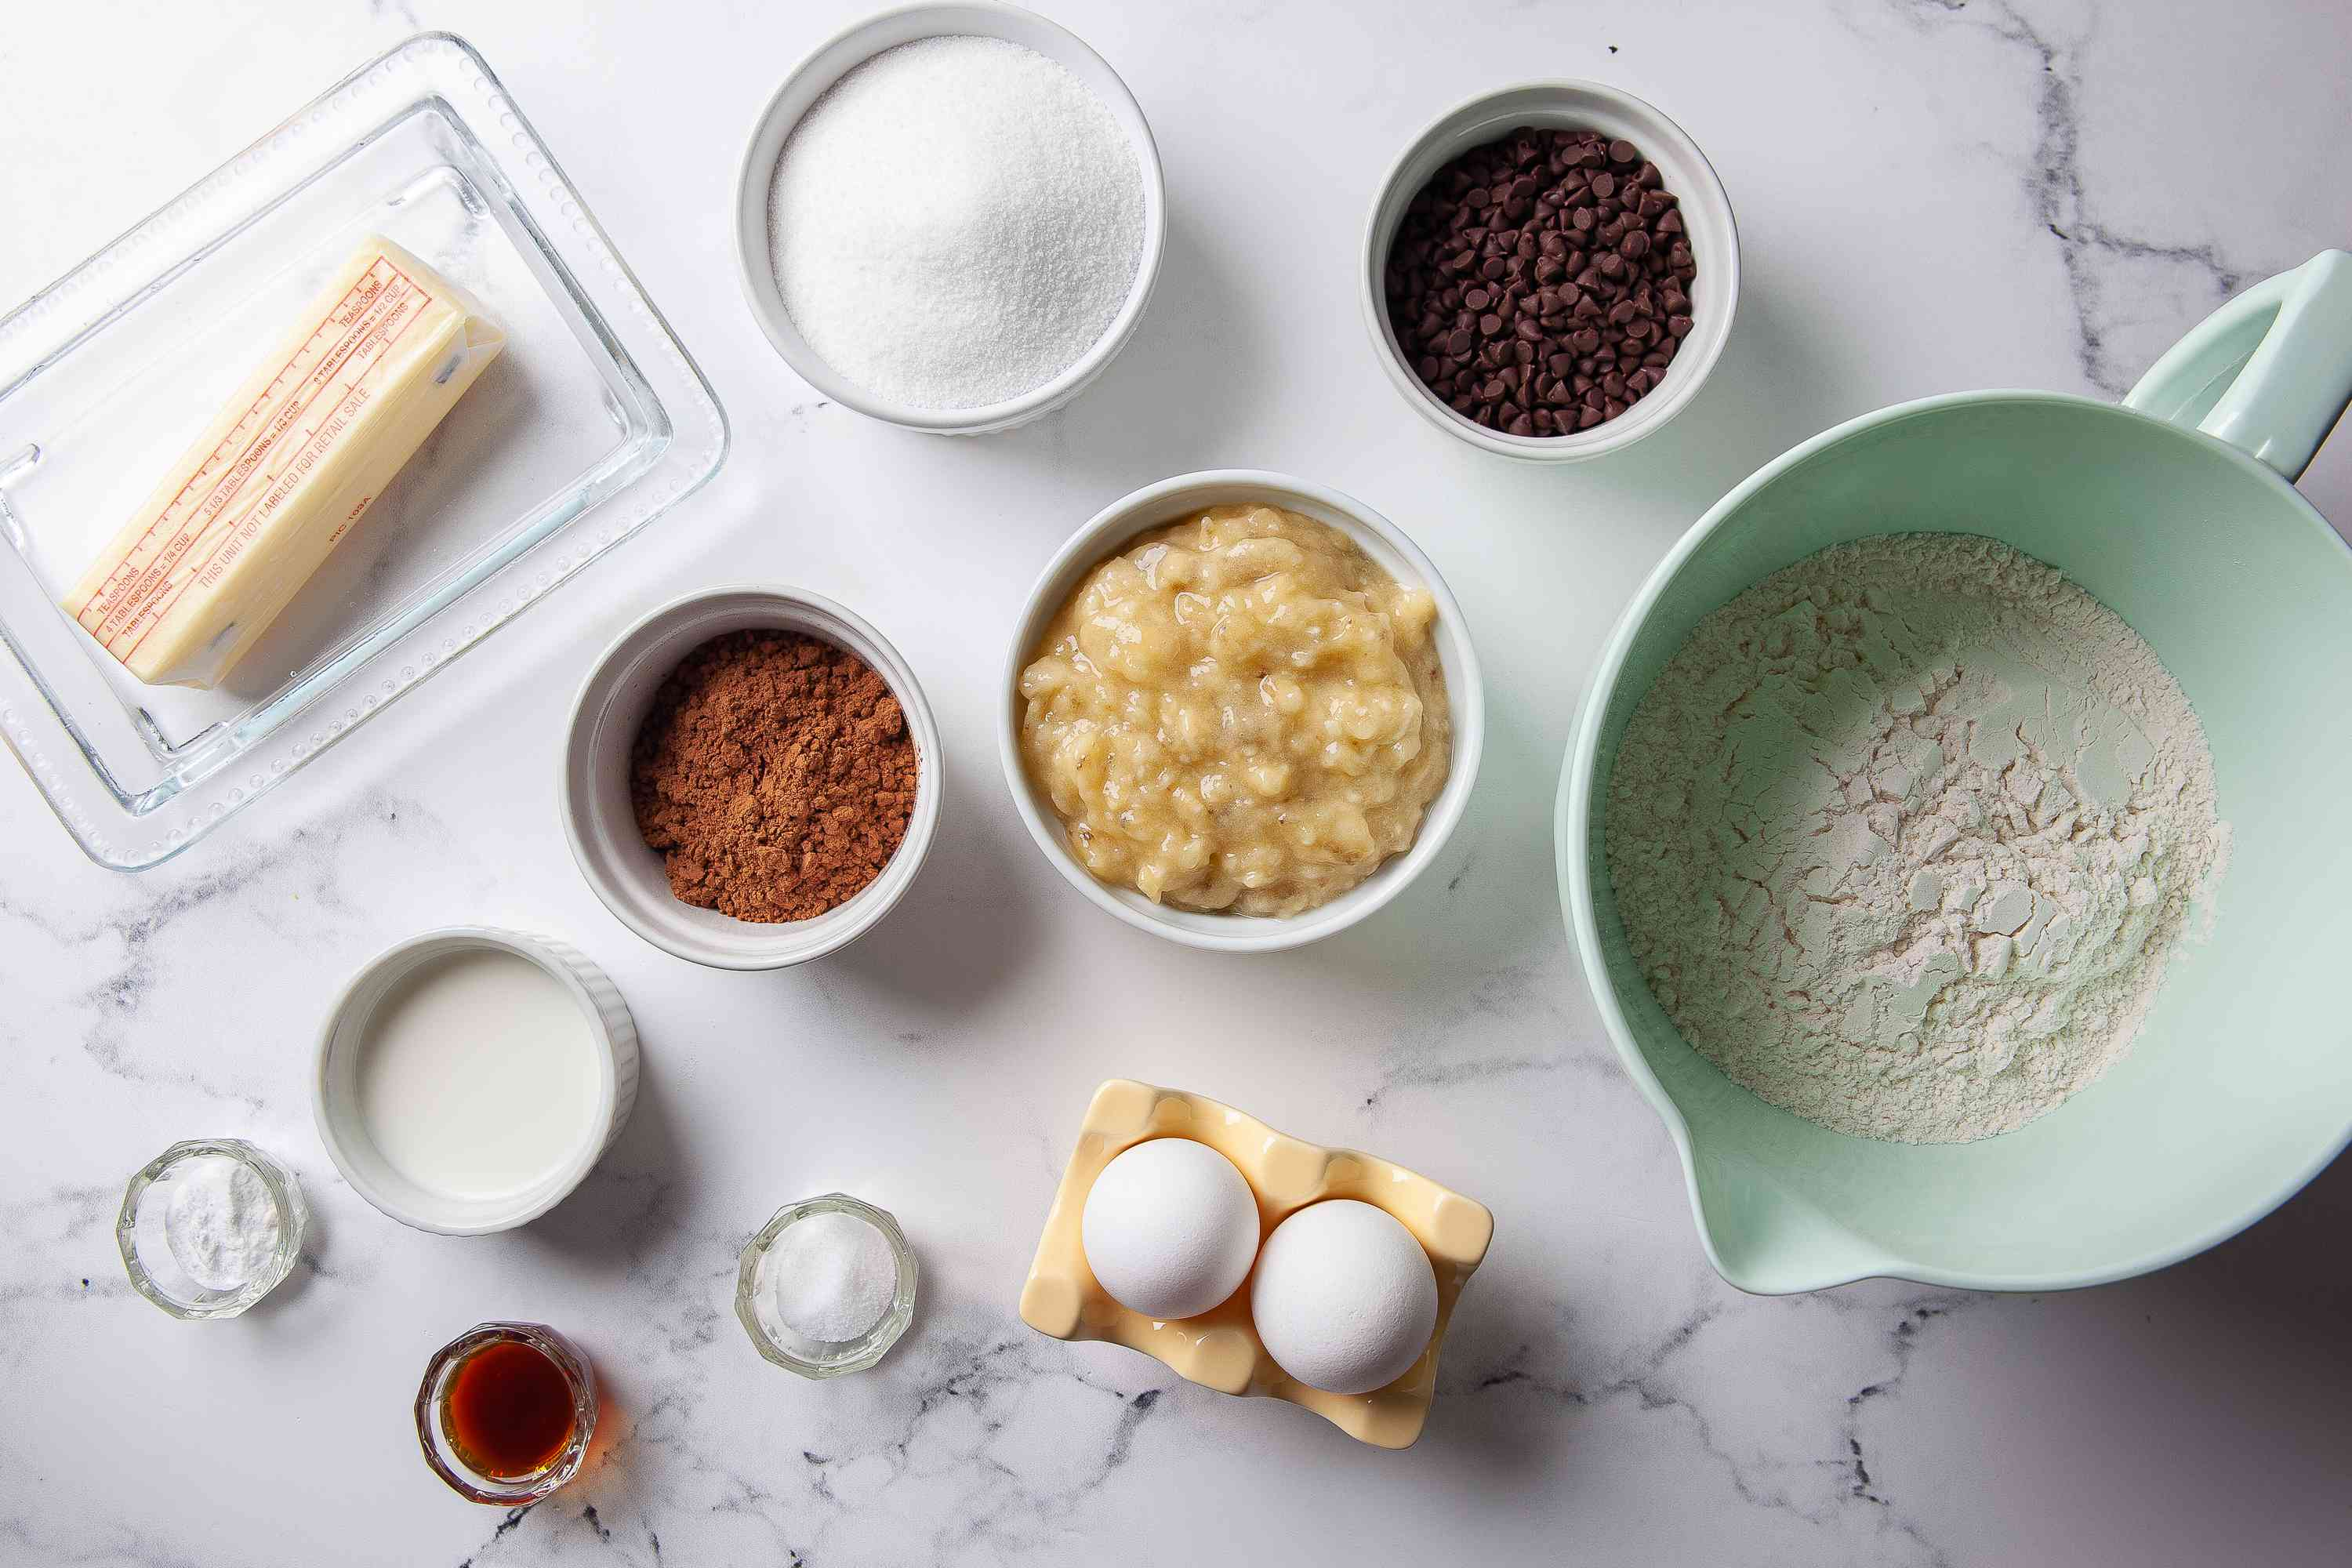 Gather the ingredients for Chocolate Banana Bread